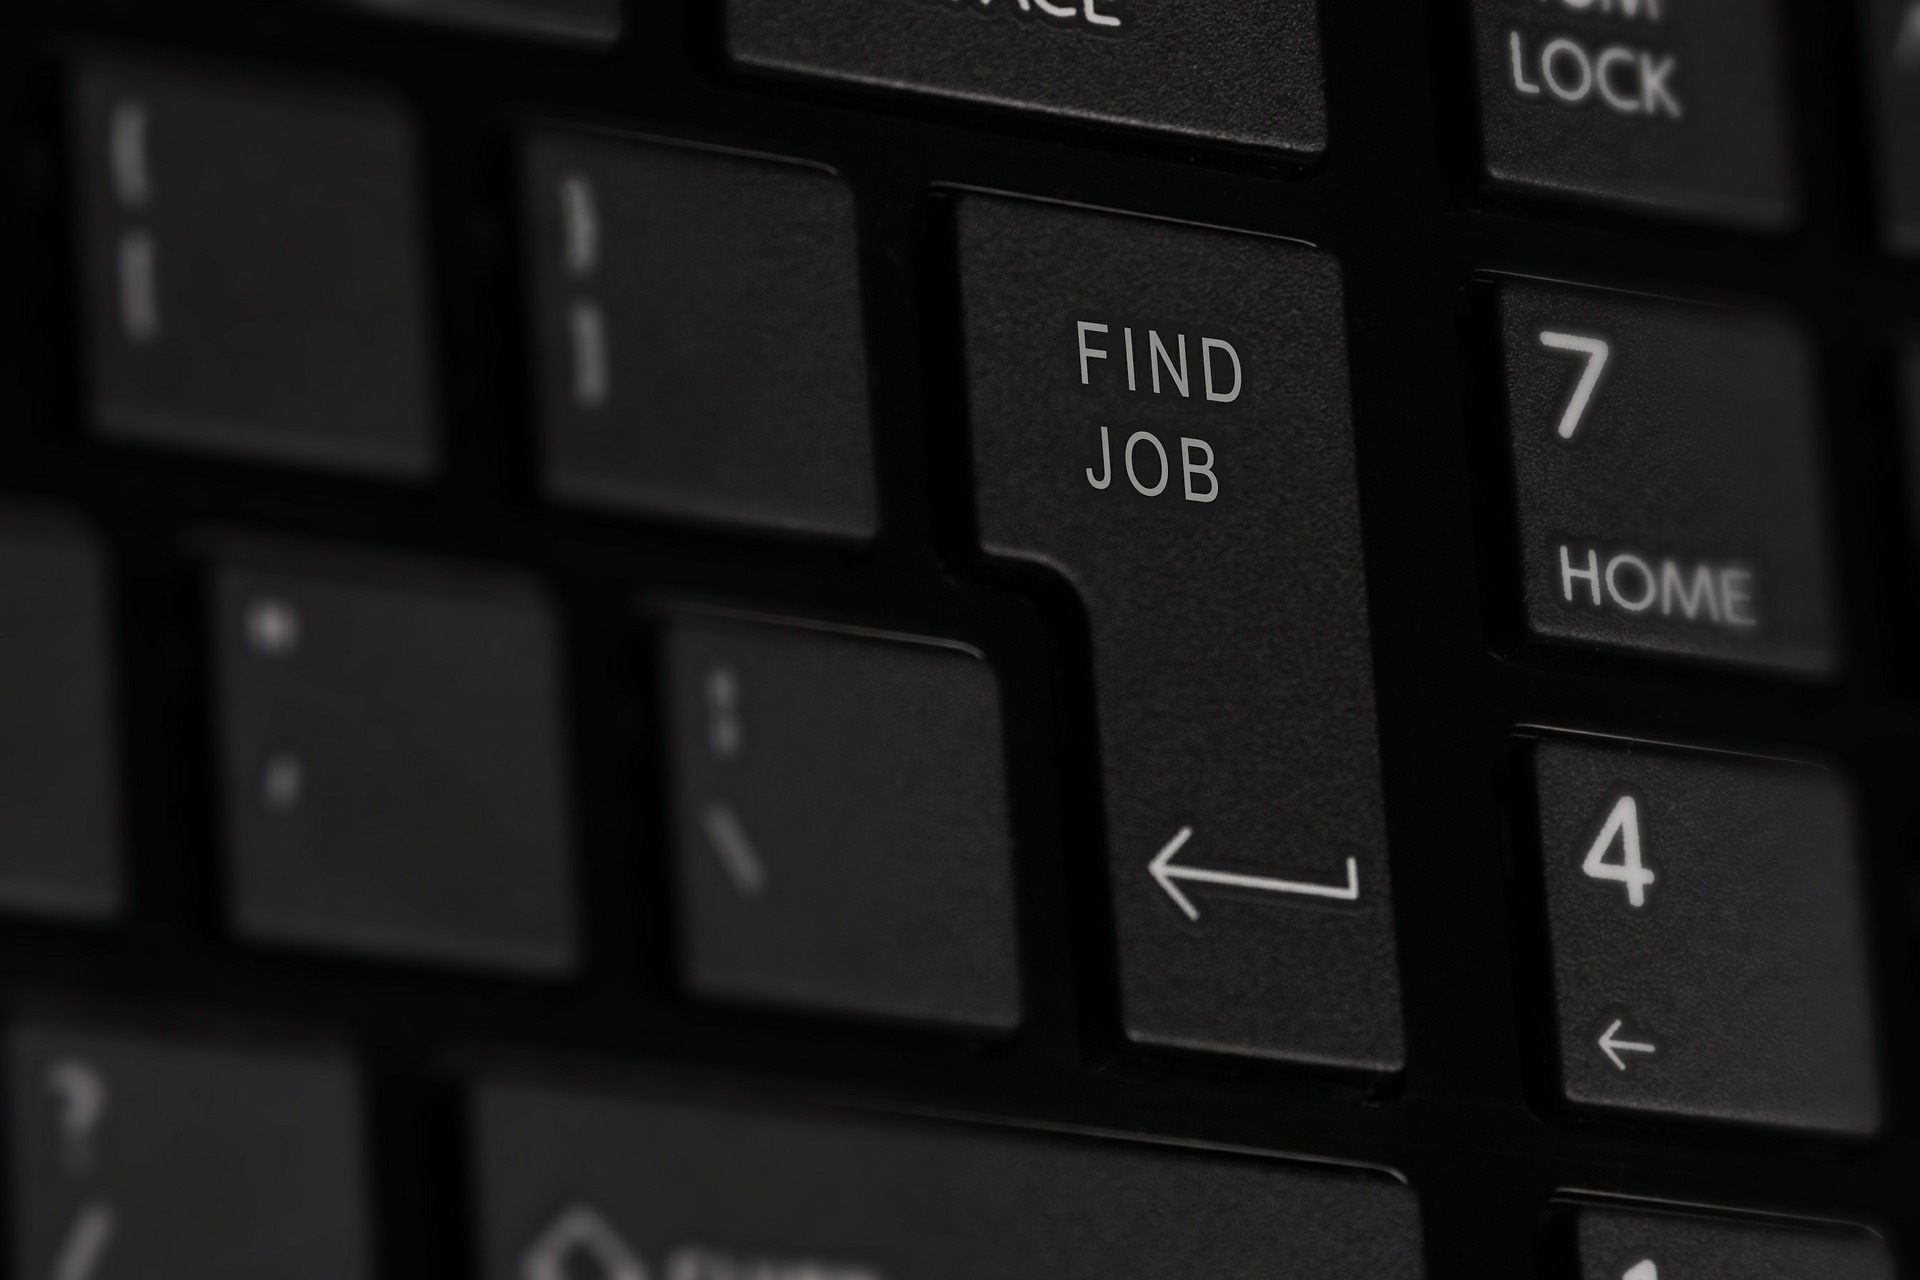 find job hunt computer keyboard